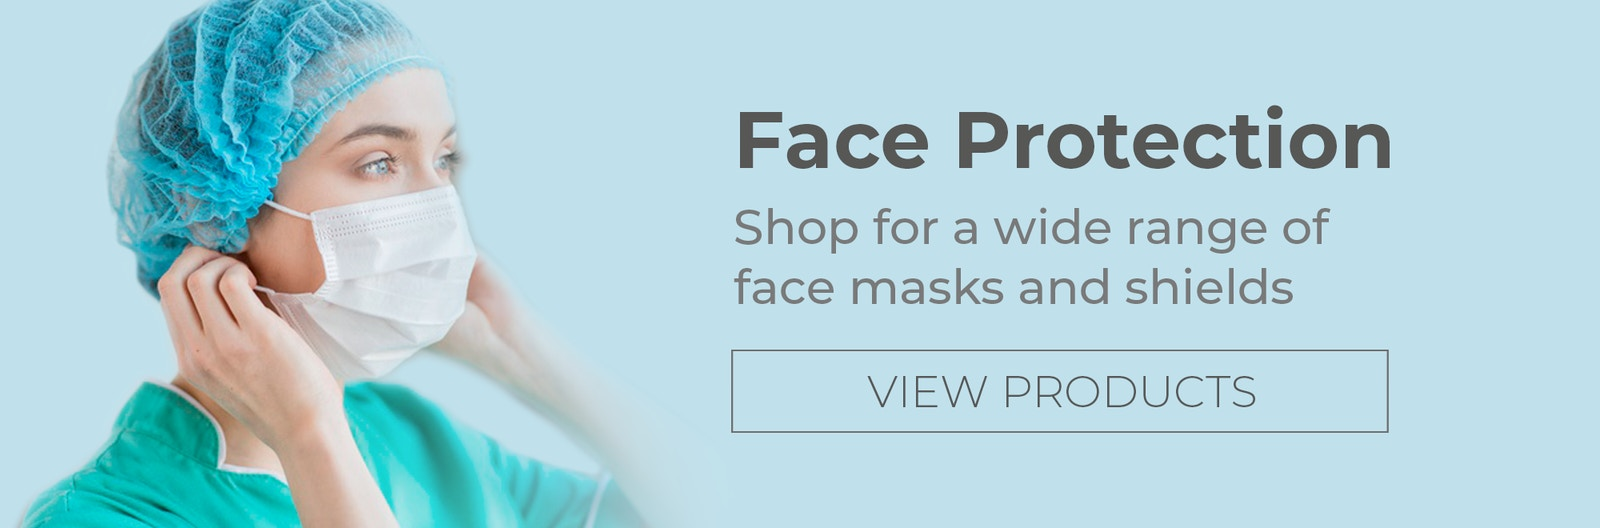 Shop for Face Mask & Shields